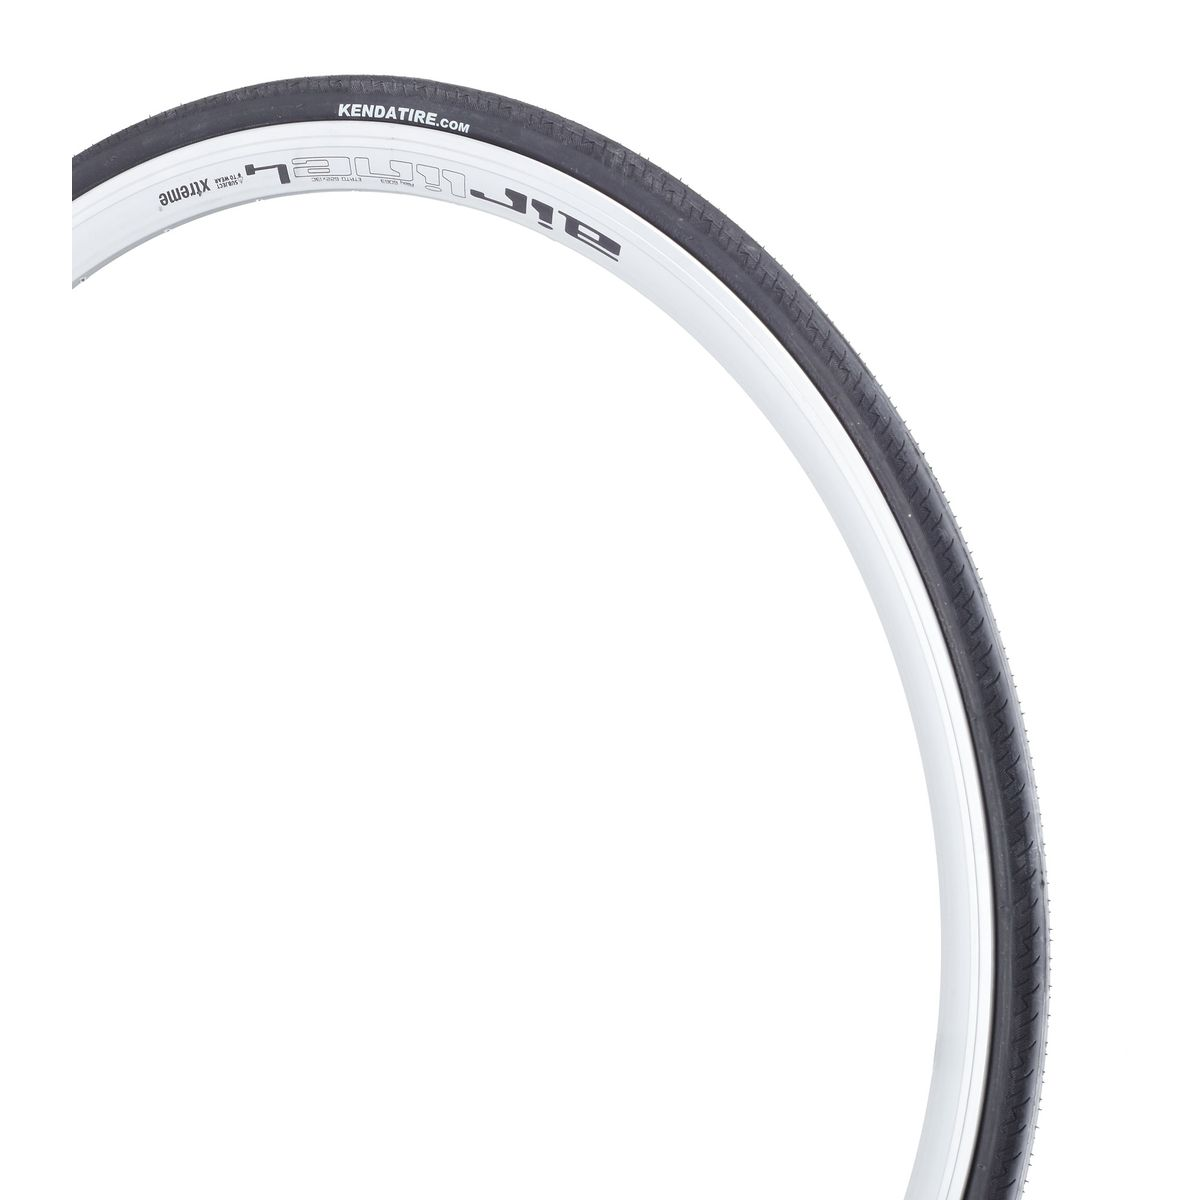 Kontender Competition road tyre